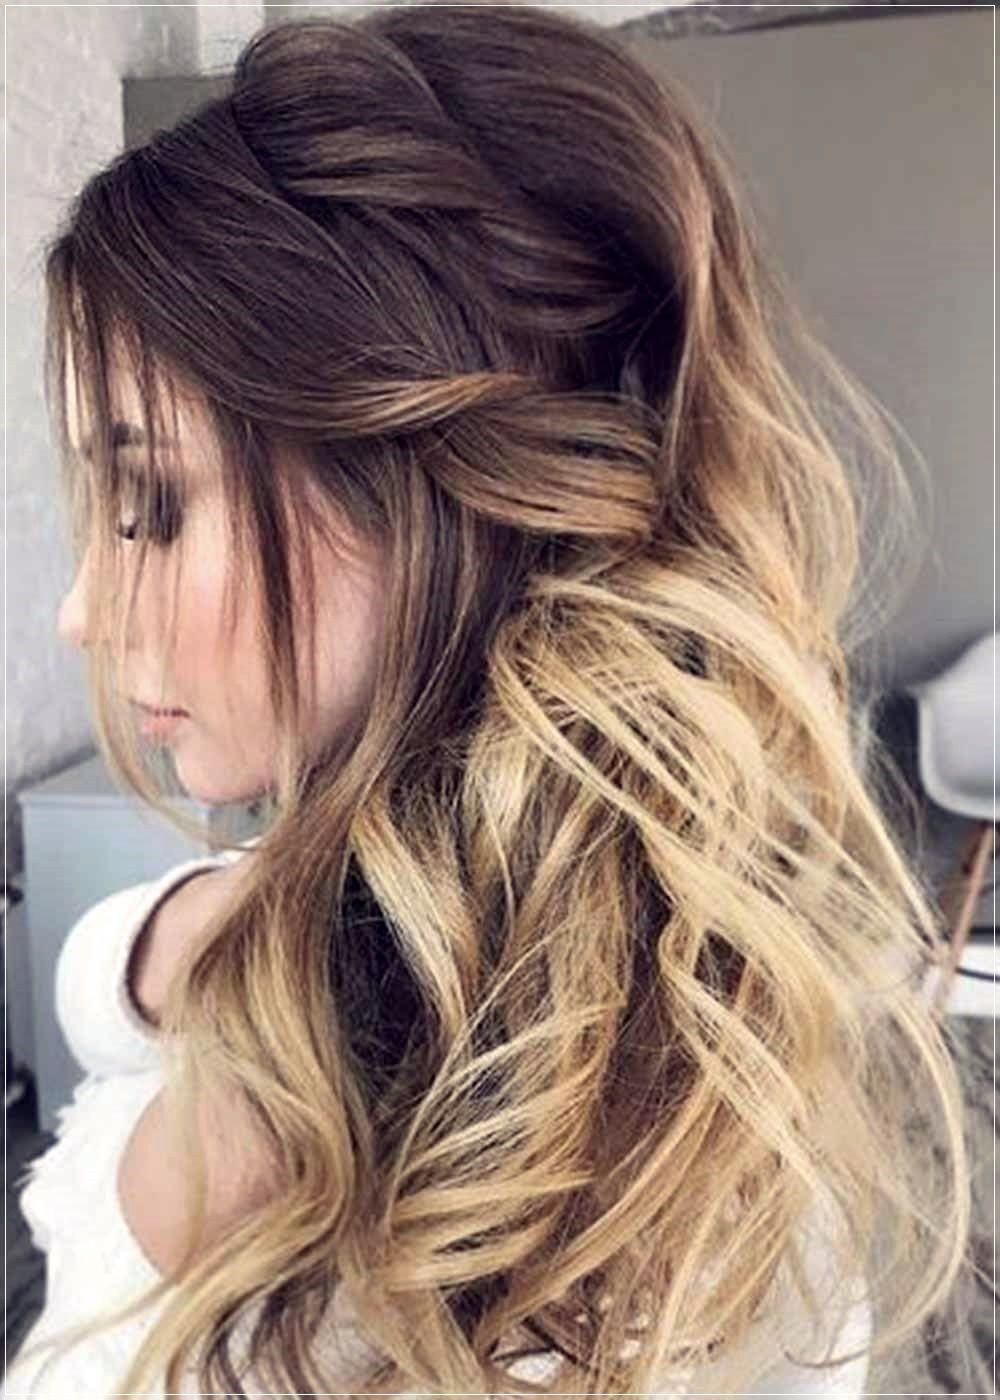 Hairstyles for curly hair: 130 Simple and beautiful ideasShort and Curly Haircuts in 2020 ...